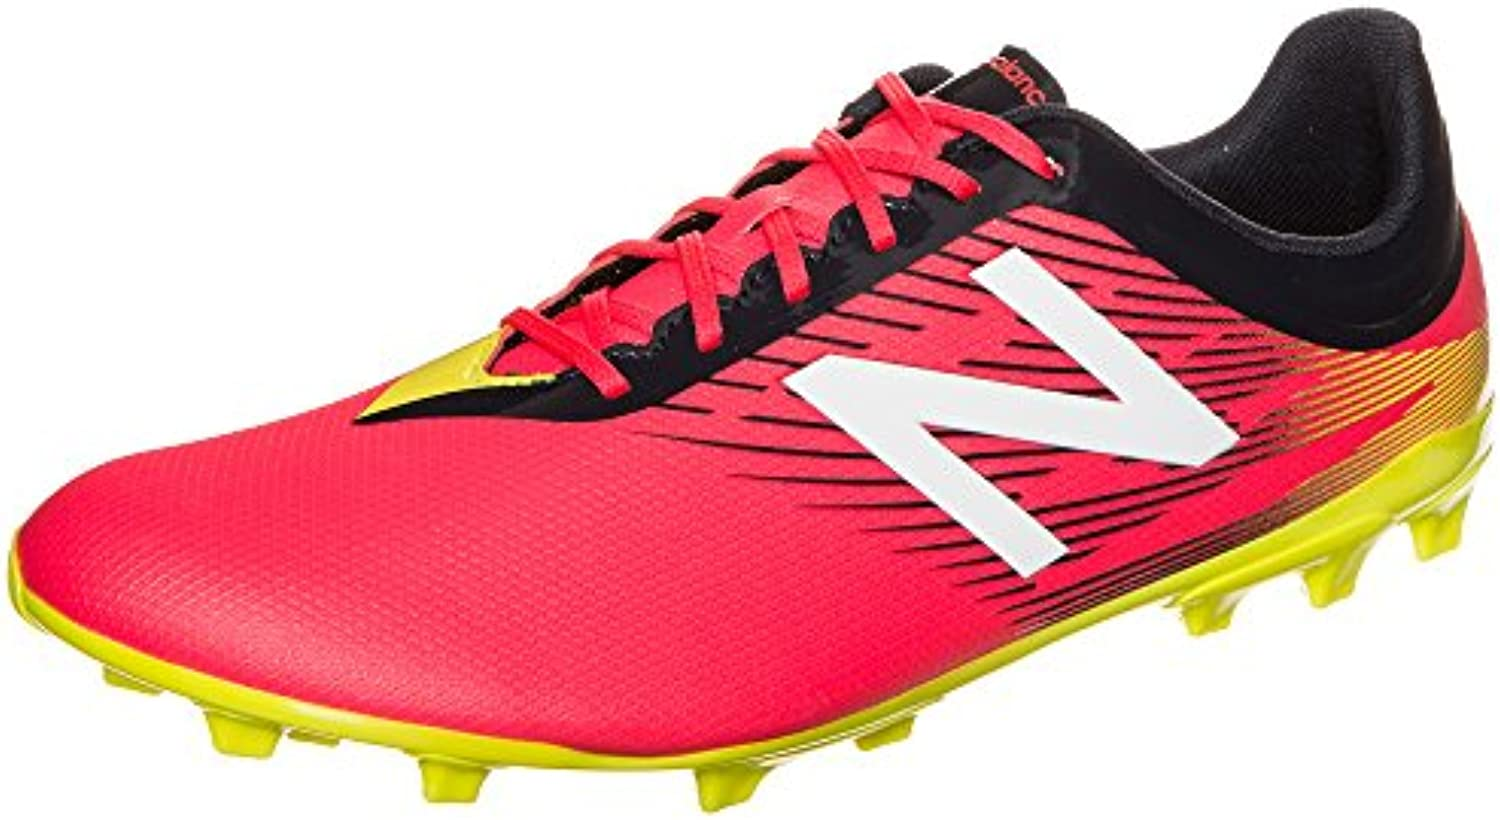 New Balance Furon Dispatch AG Football Boots   Size 9